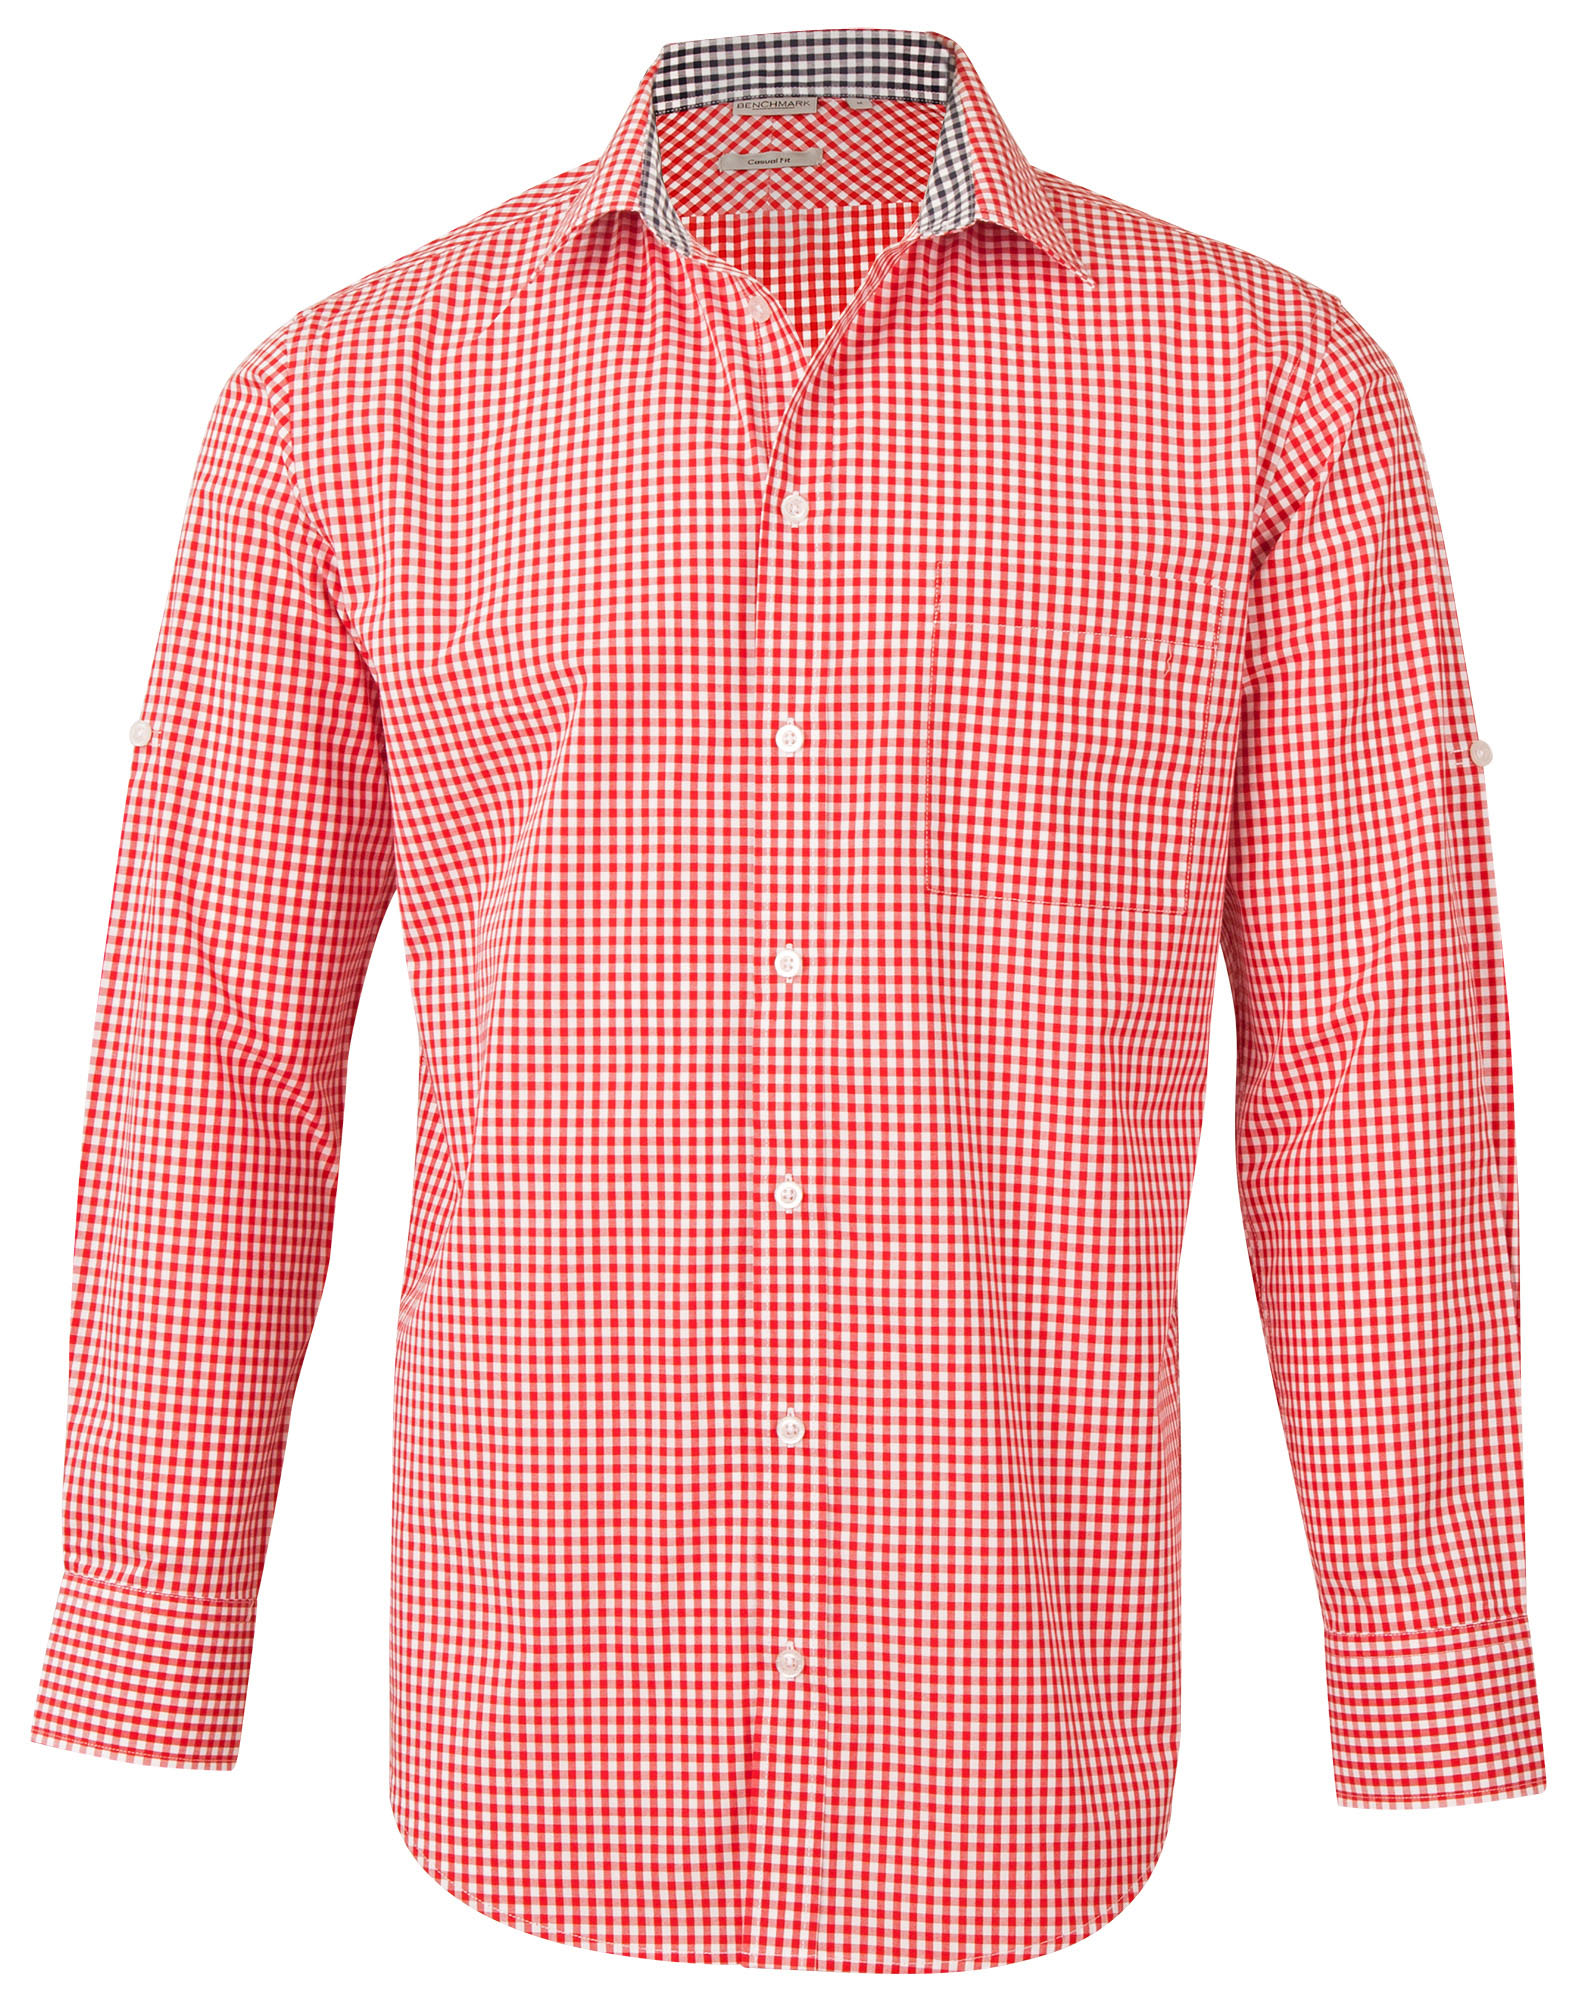 71b4ee9b677 M7330L Men s Gingham Check Long Sleeve Shirt with Roll-up Tab Sleeve ...